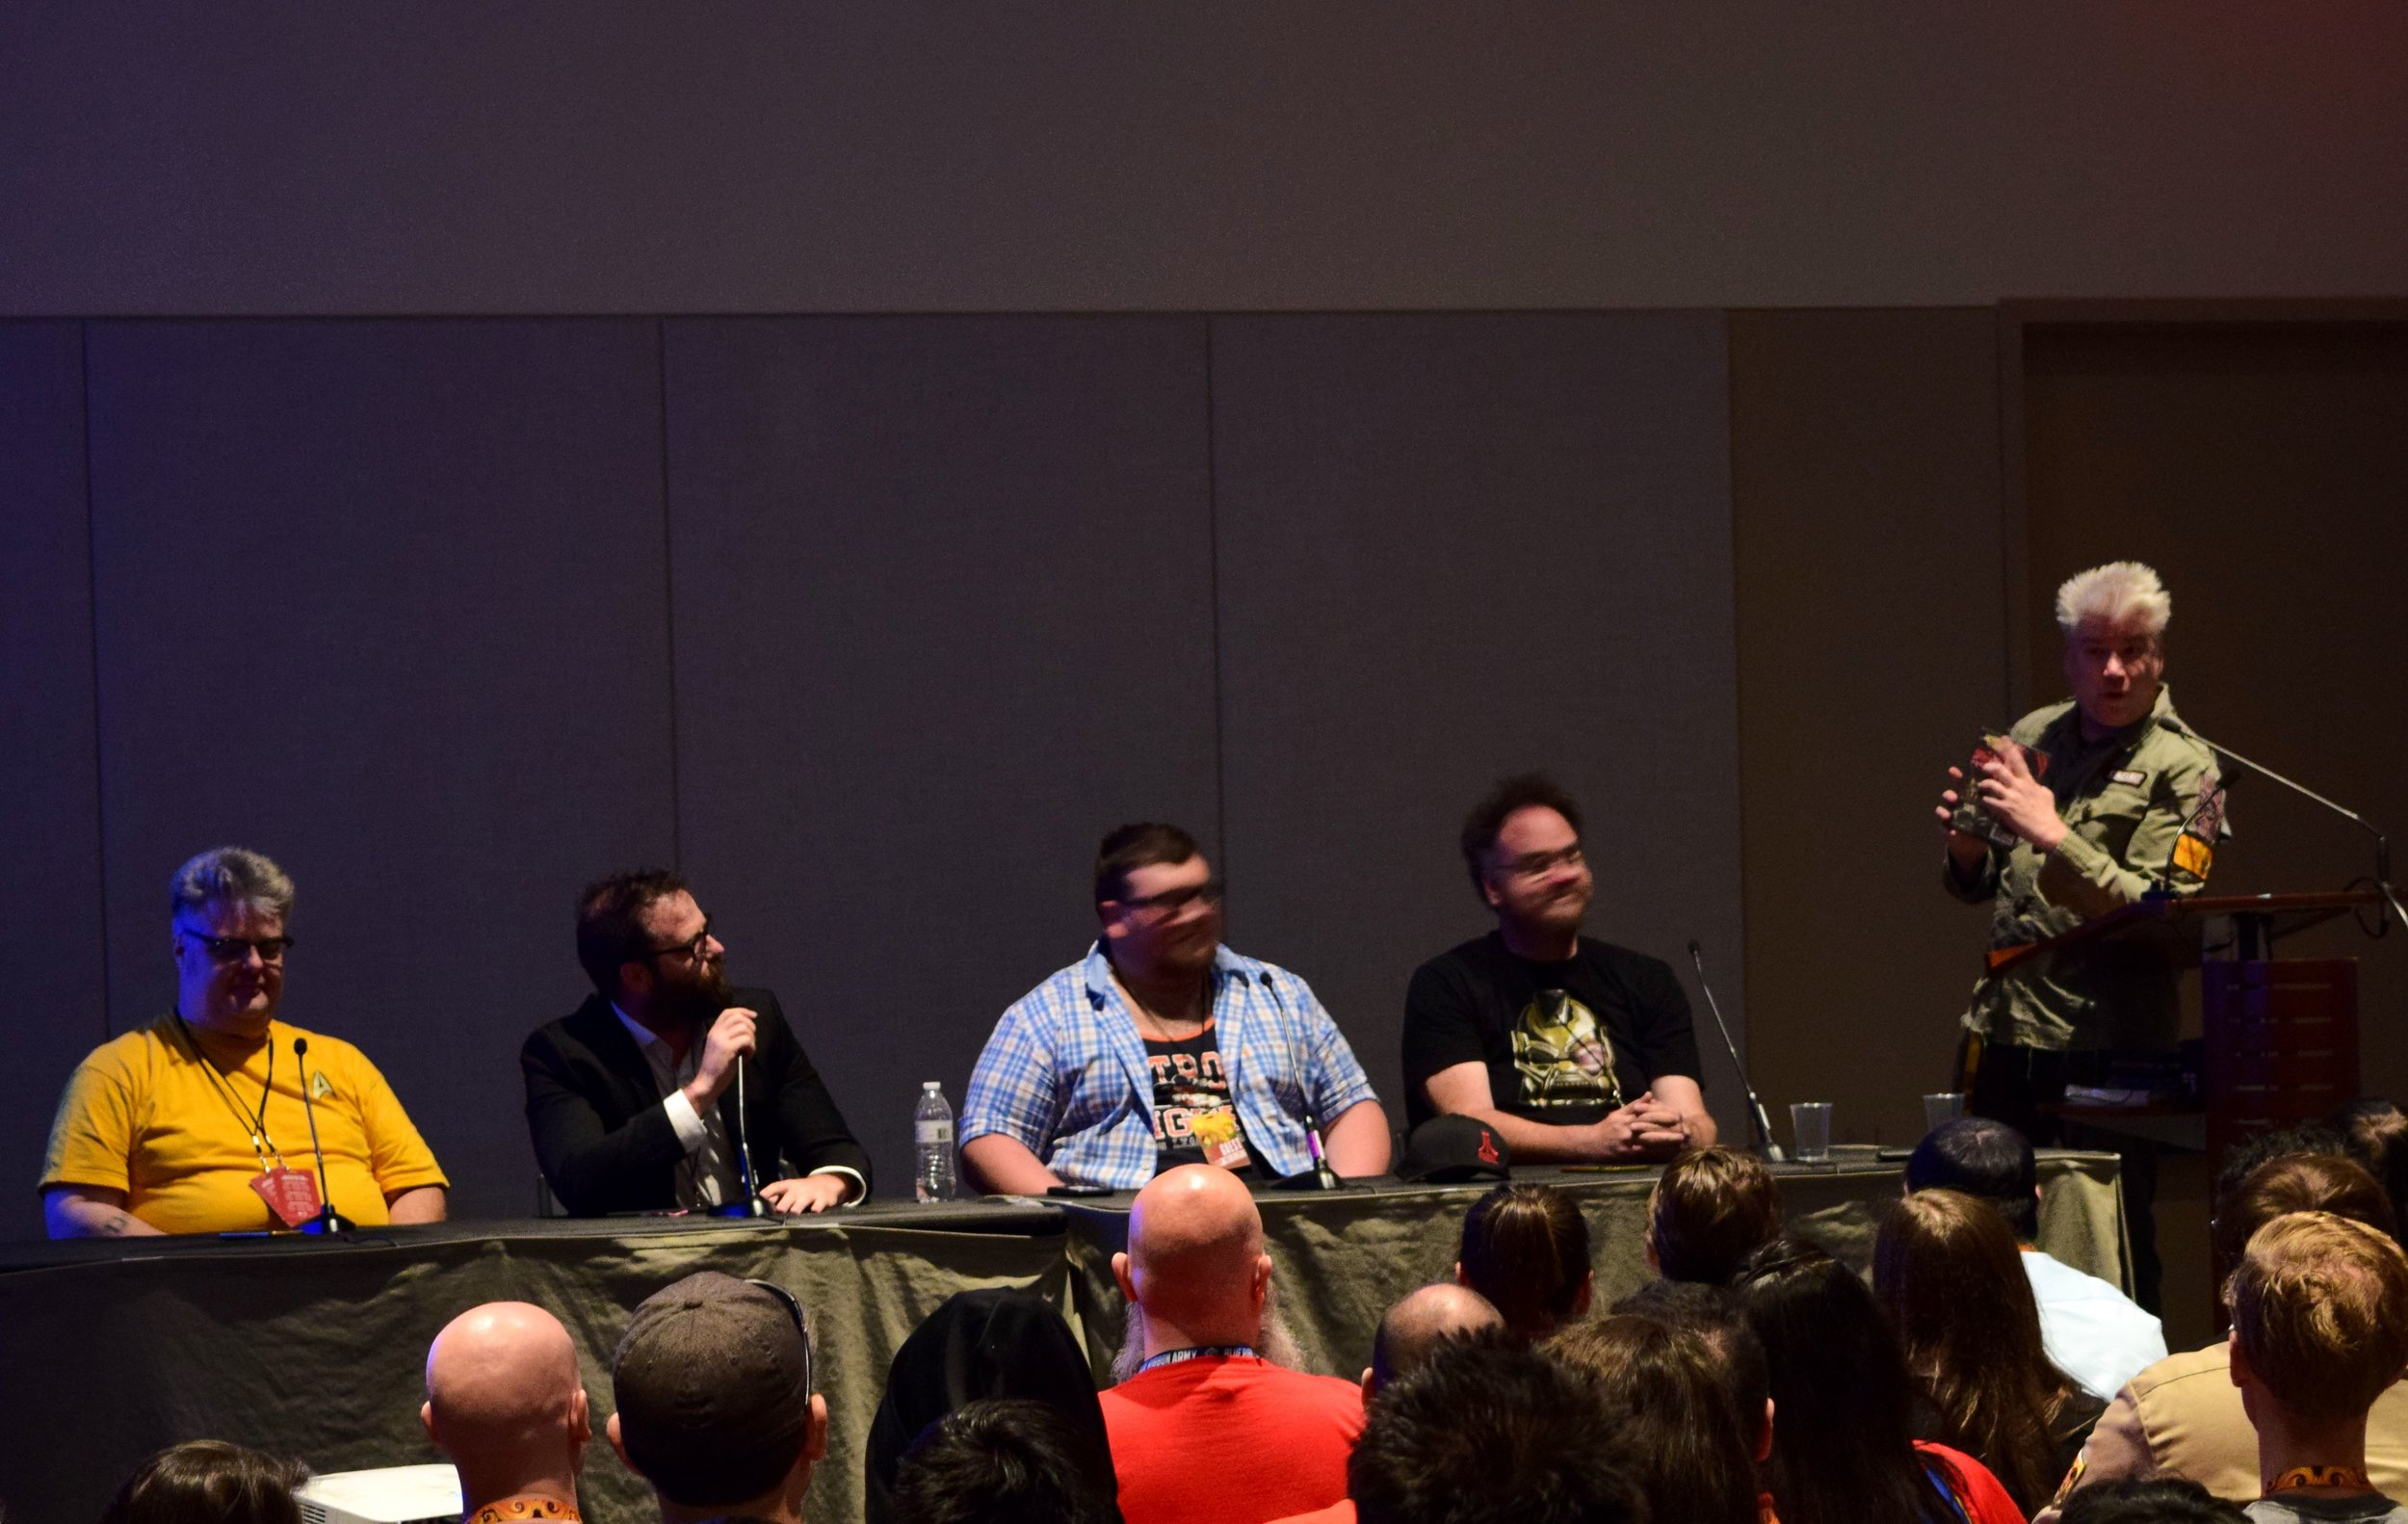 Paul Goebel, T.J. Chambers, Tommy Bechtold, Jon Schnepp, and Chris Gore in the Film Threat panel at Phoenix Comic Con 2017. (2)